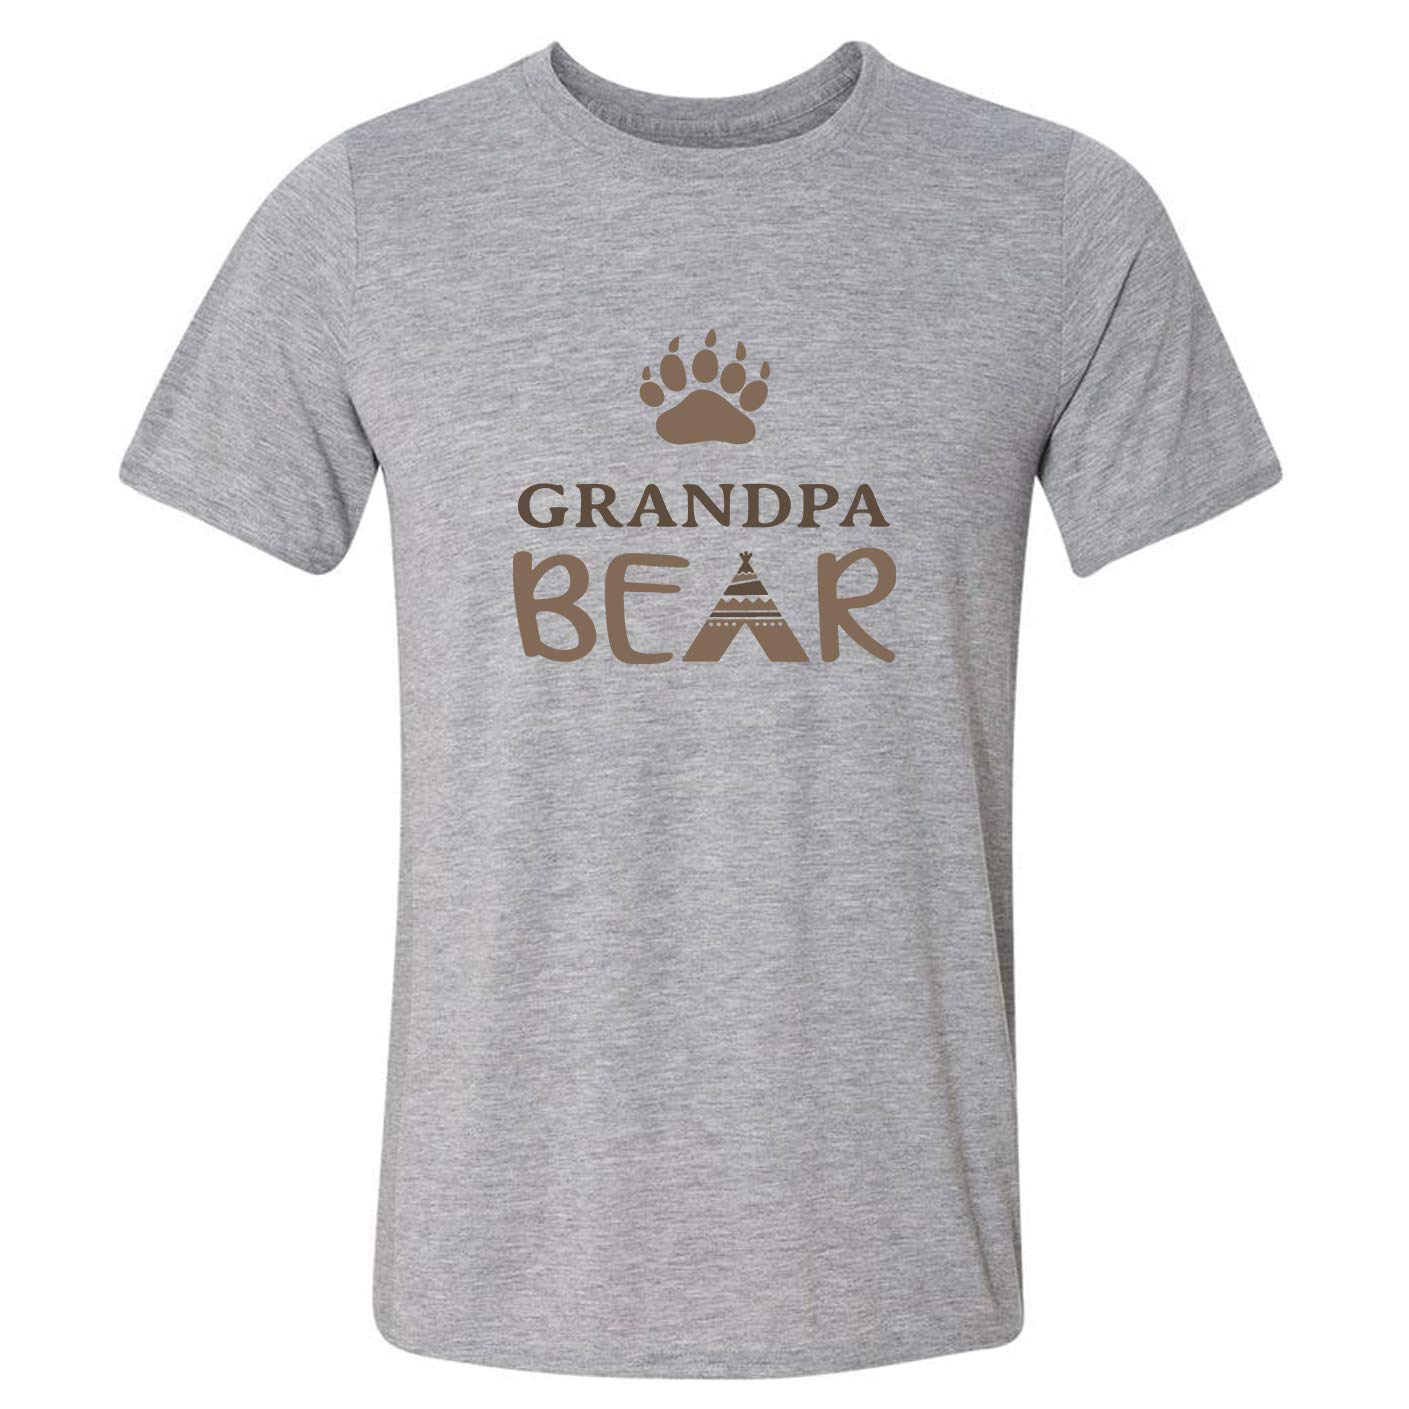 Grandpa Bear T-Shirt sold out Selling and selling